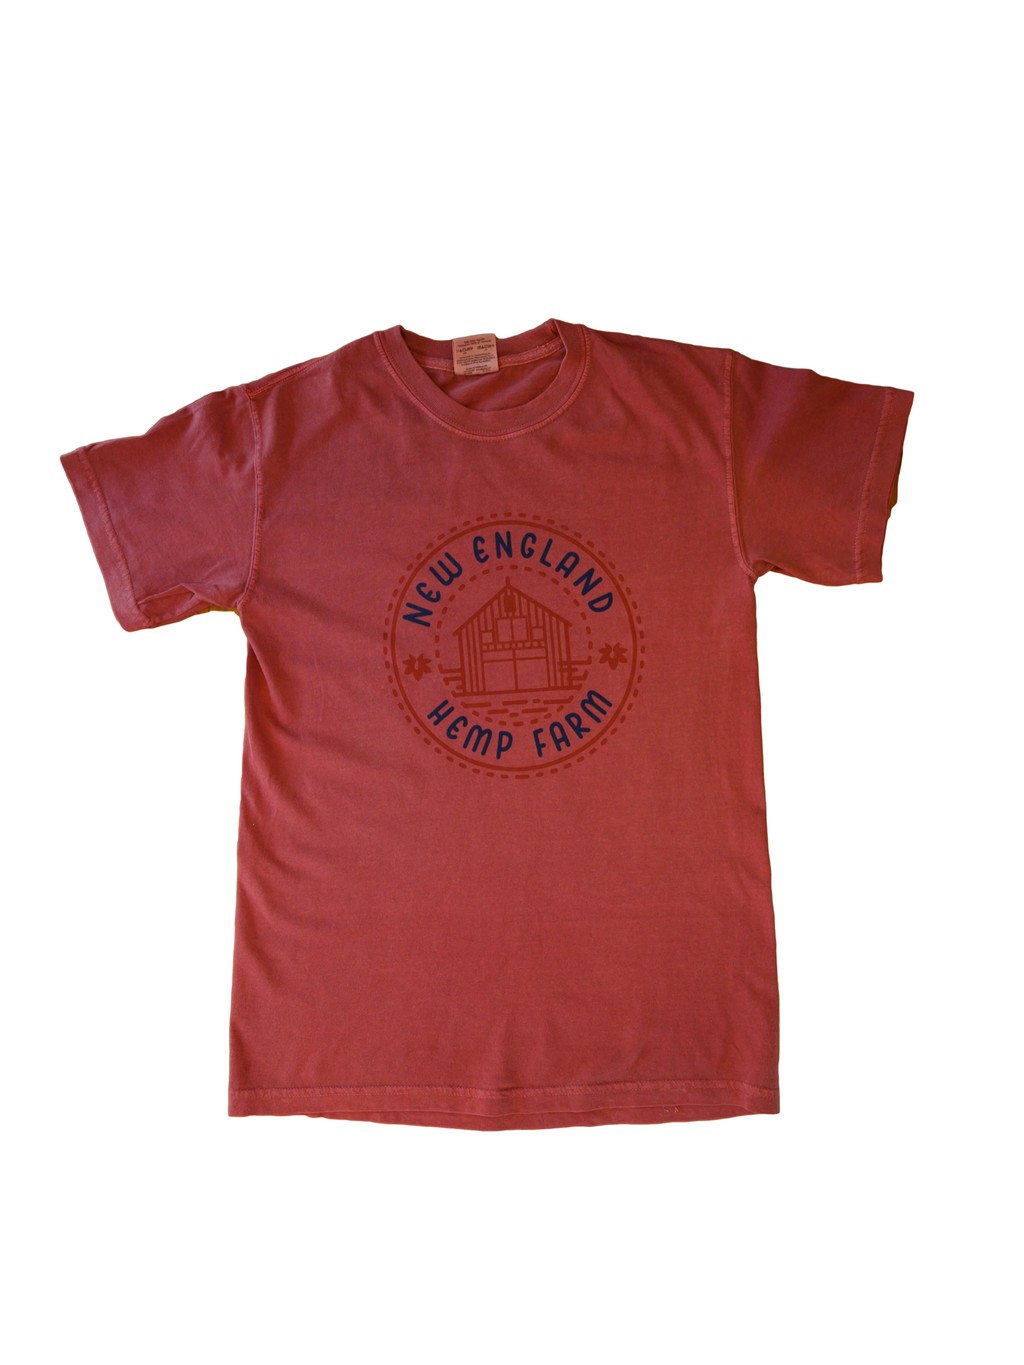 The Red Farmer Tee